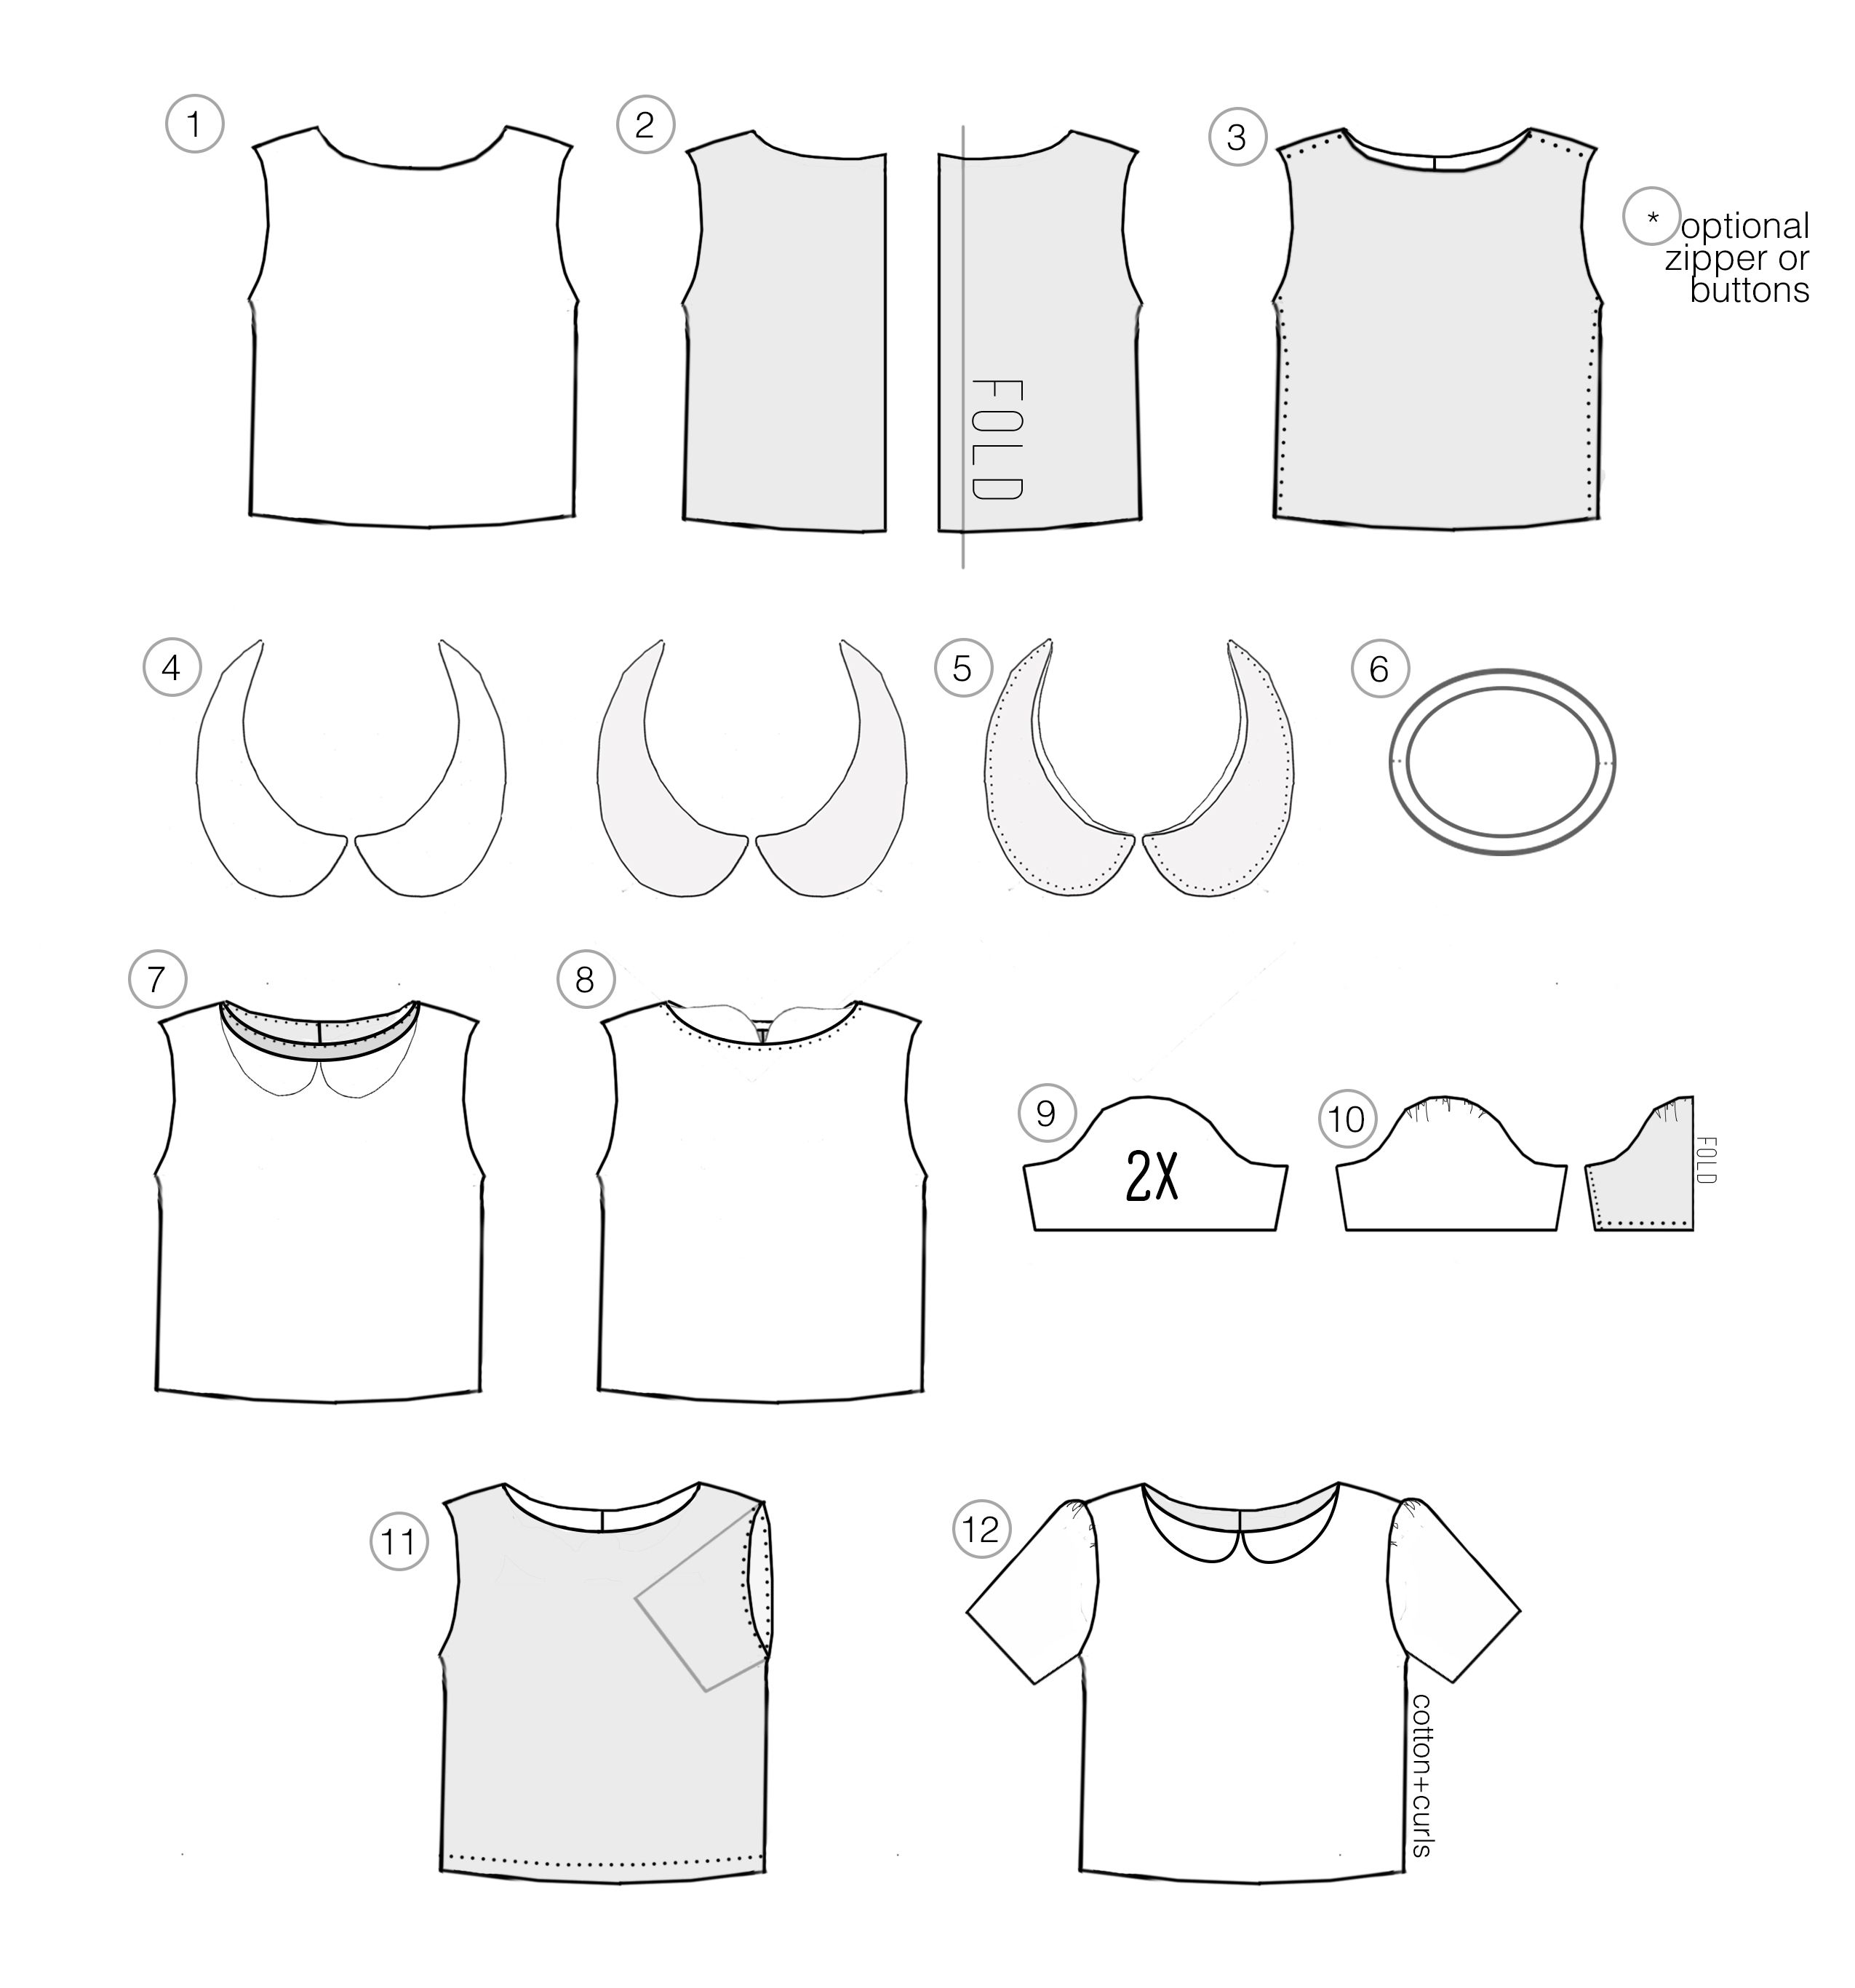 peter pan collar boxy shirt | sewing tops | Pinterest | Nähen